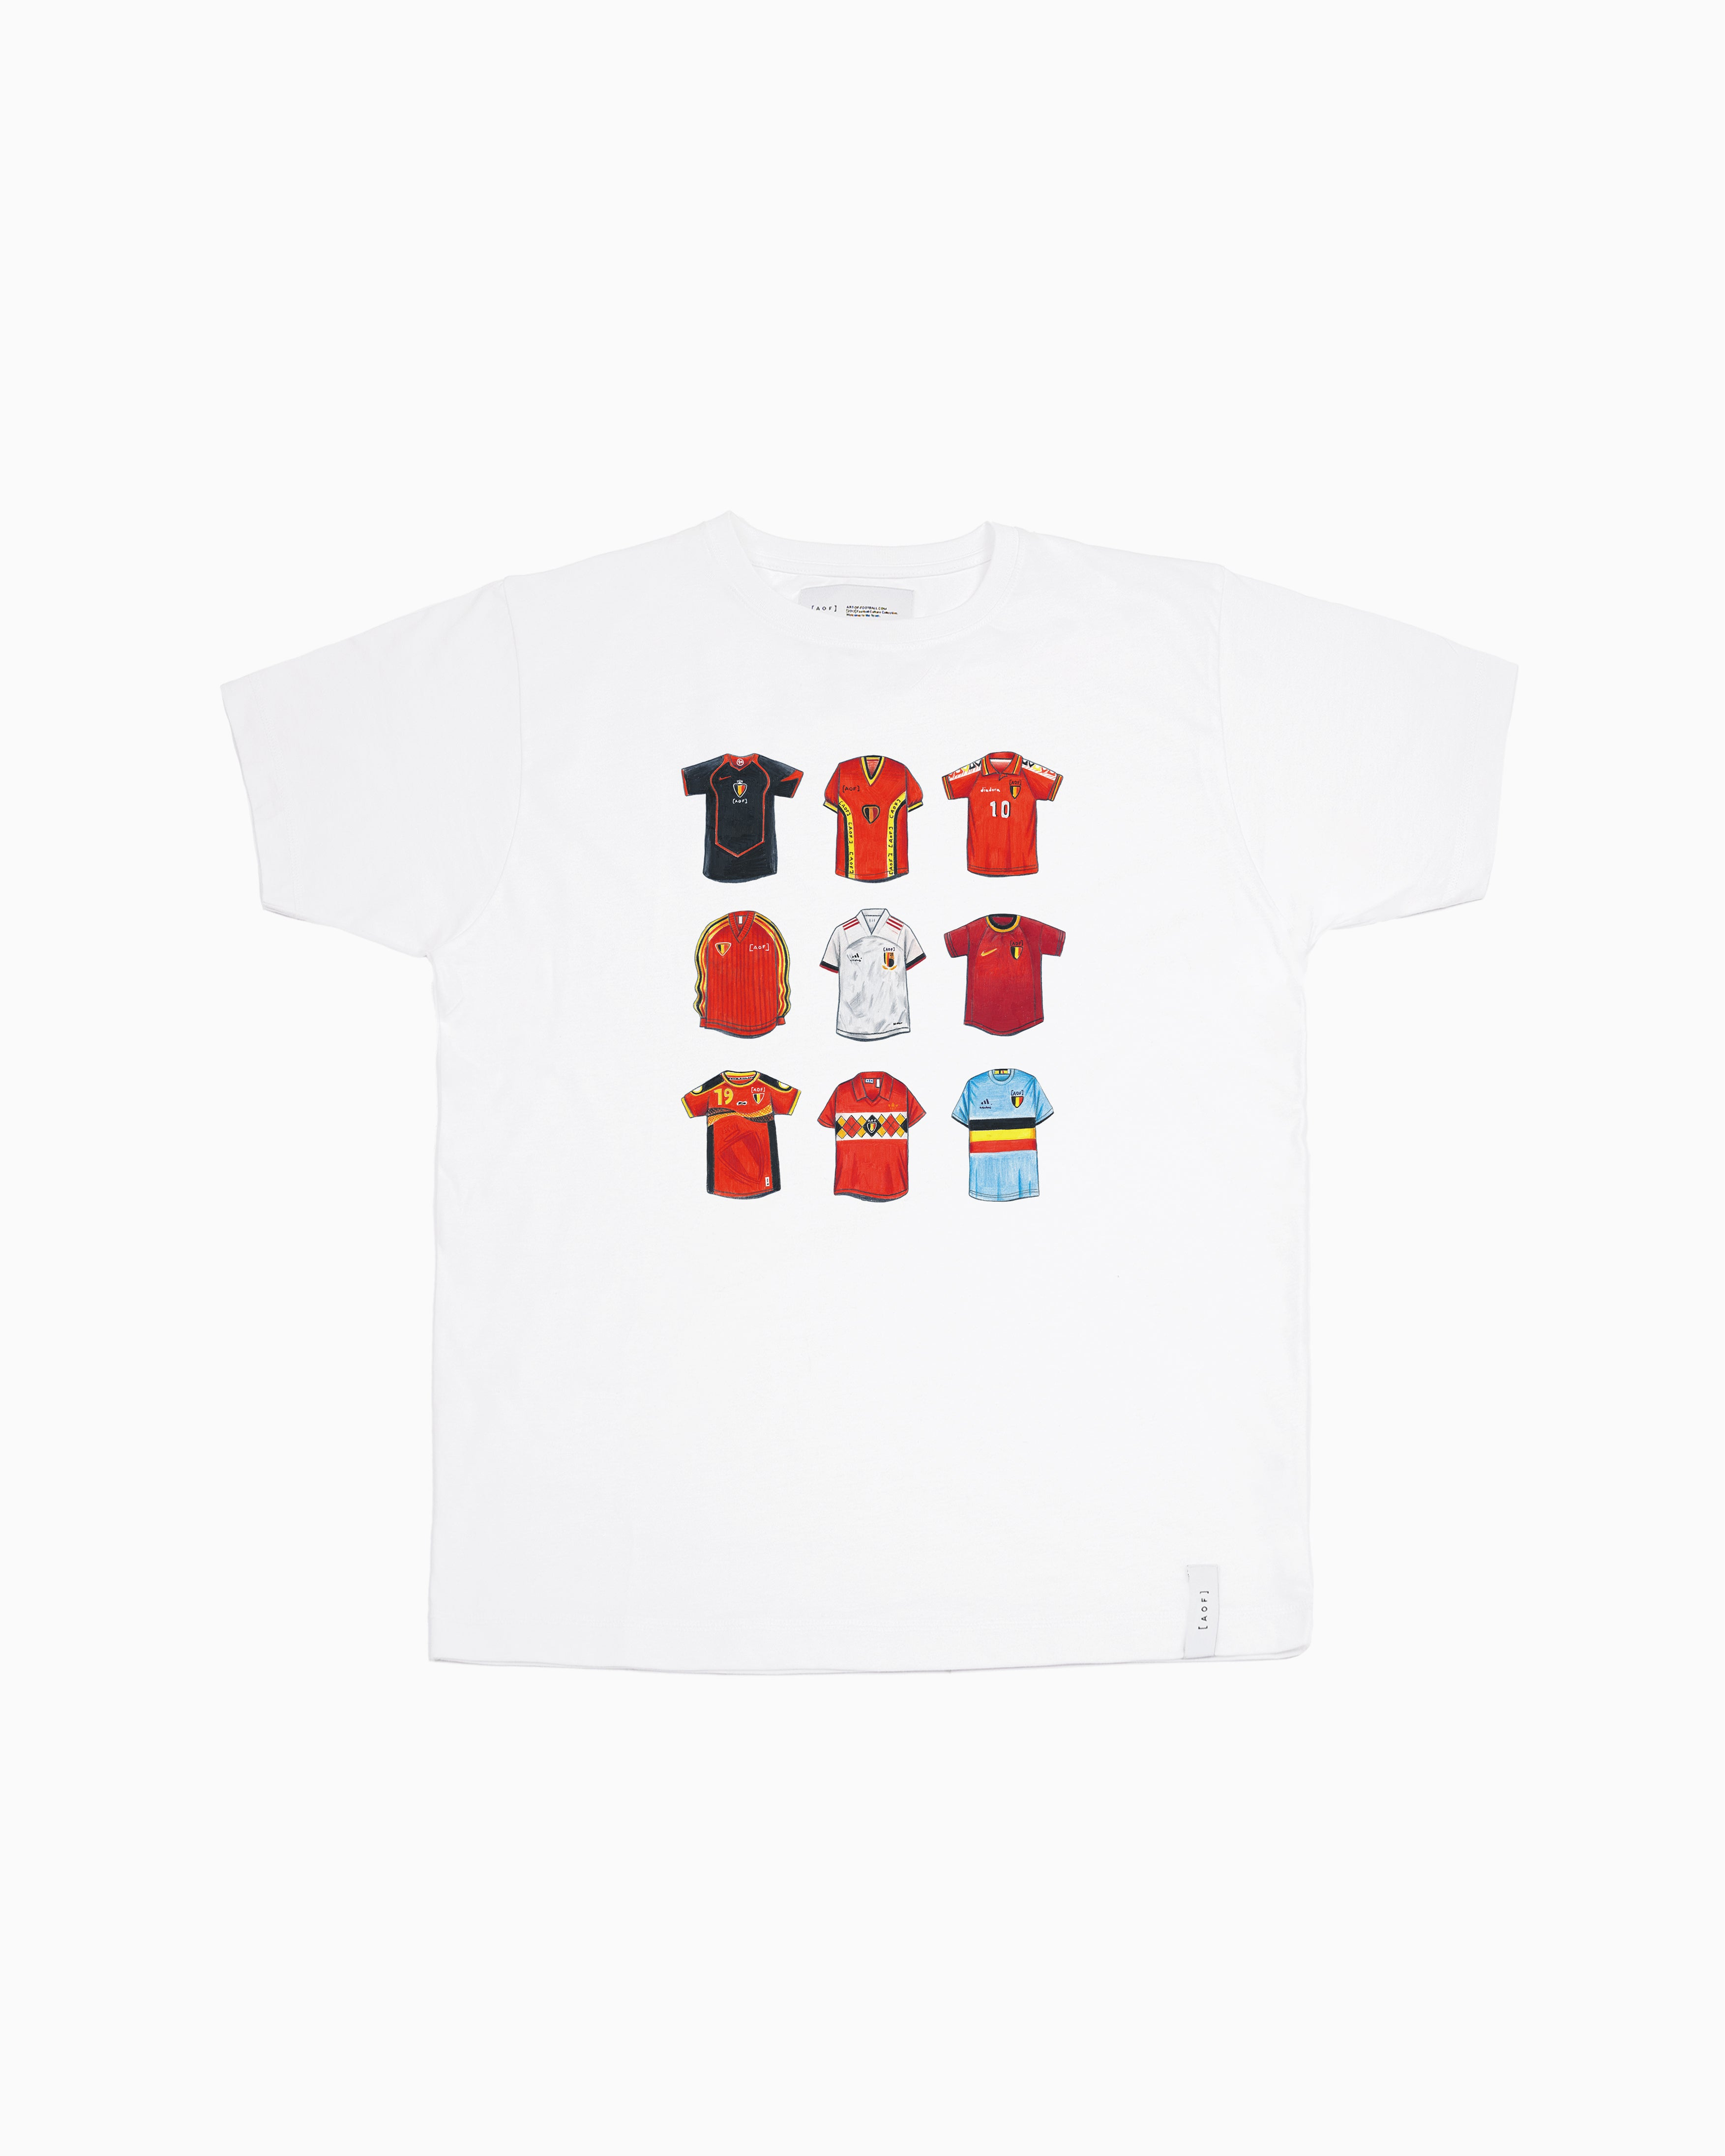 Belgium Classics - Tee or Sweat